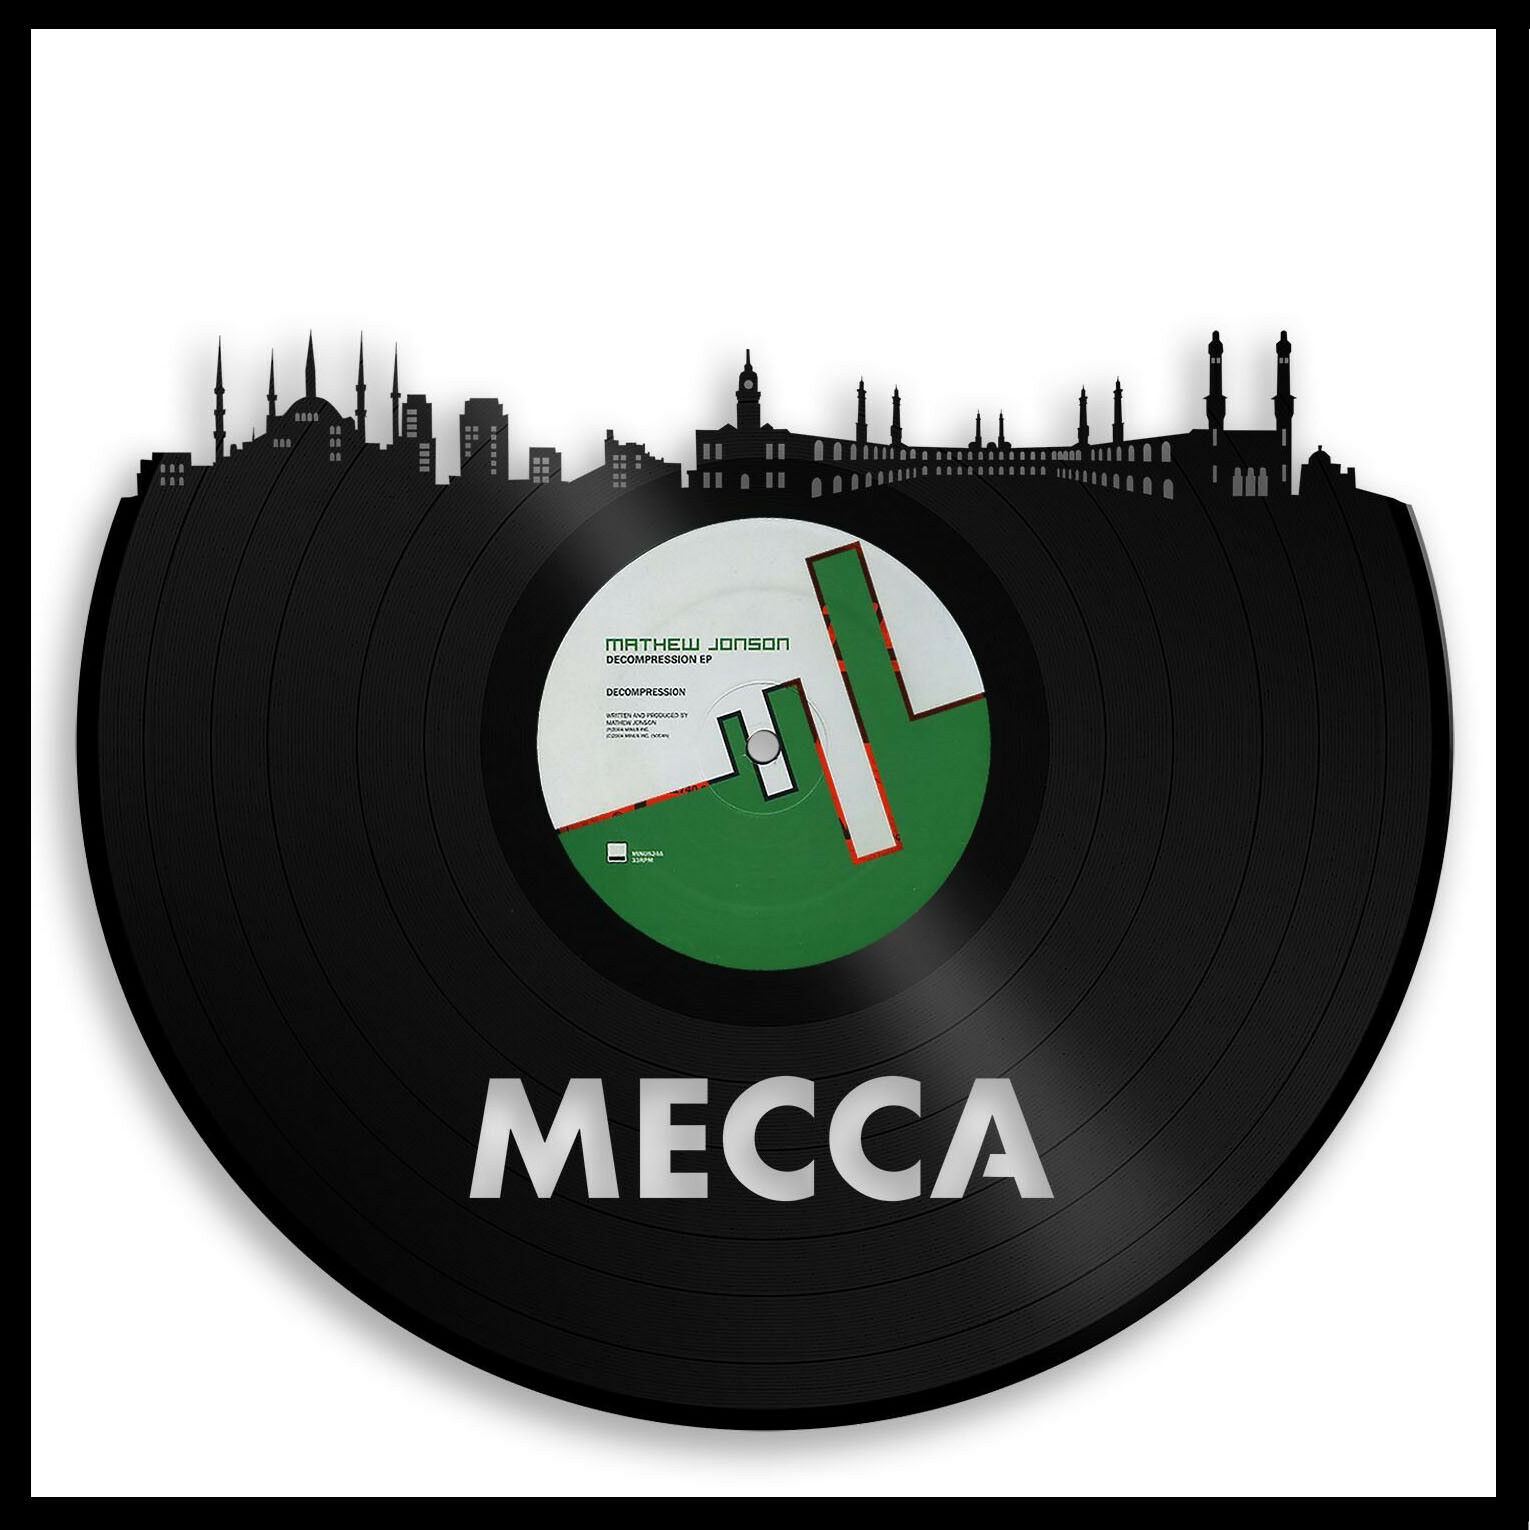 Mecca Vinyl Wall Art City Skyline Anniversary Unique Gift Home Room Decor Framed